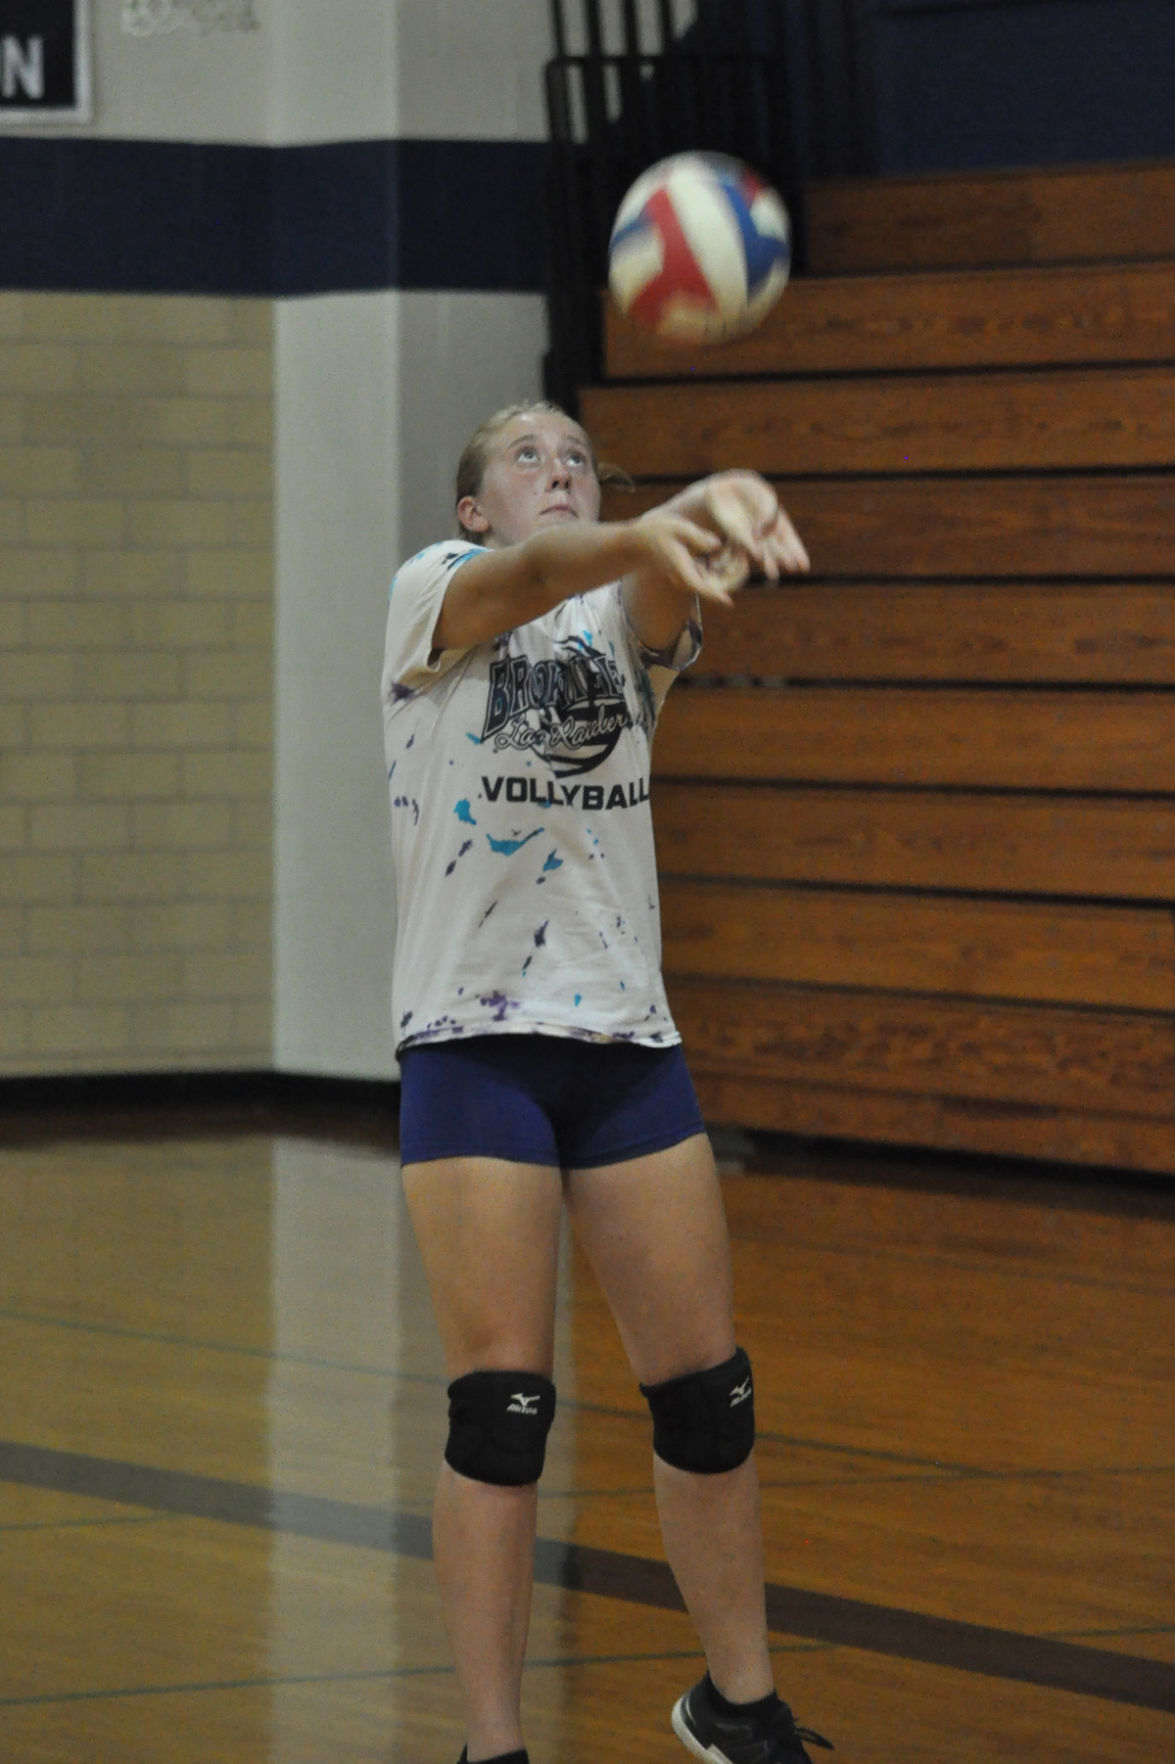 Julia Bailey VB practice